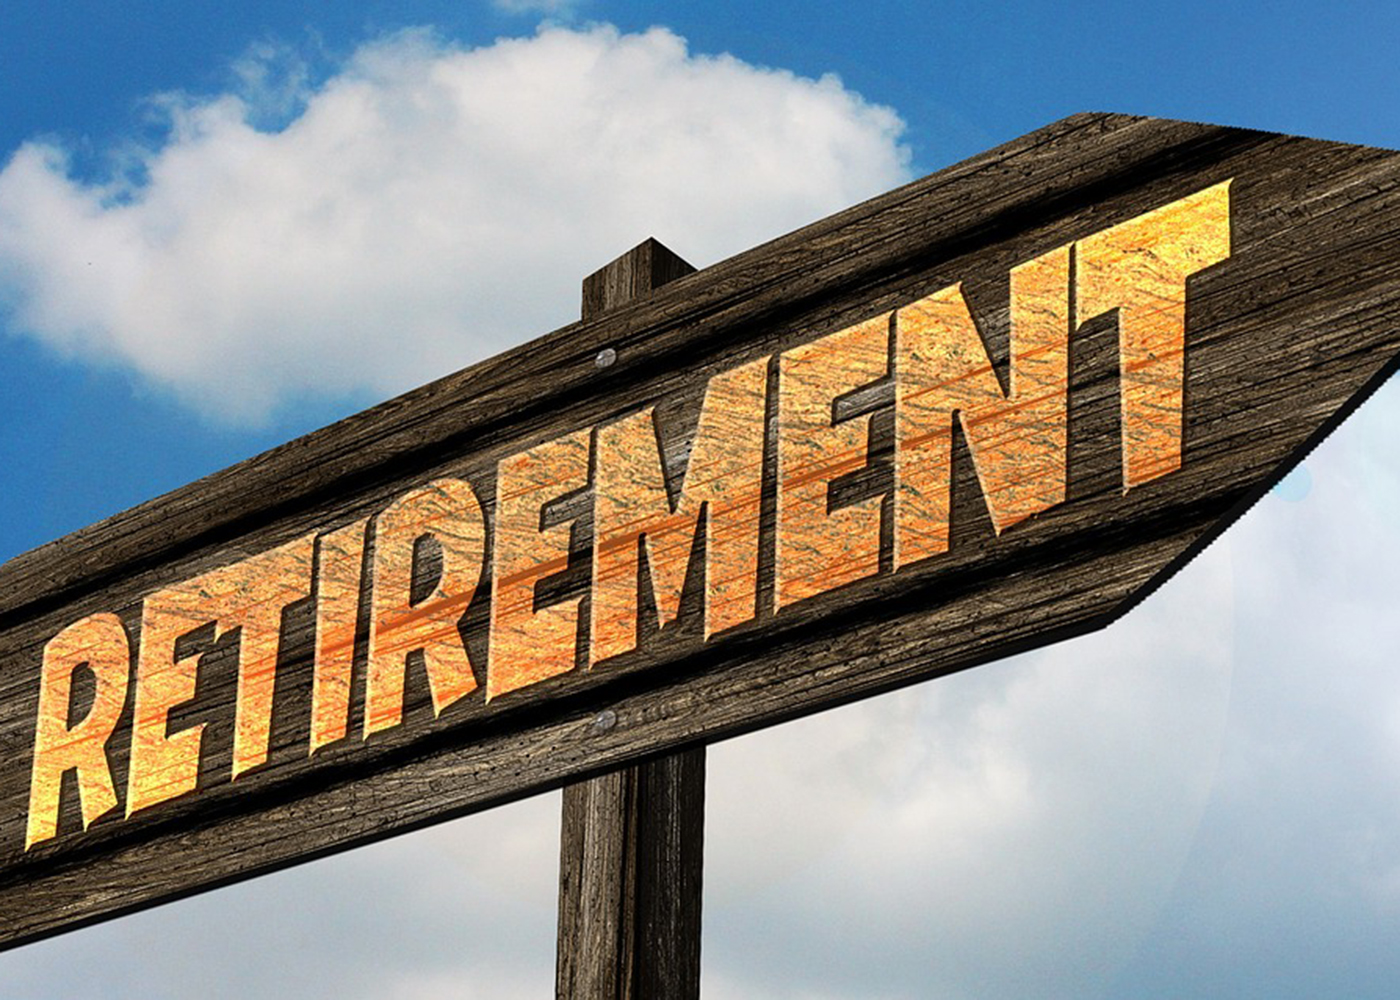 6 Common Pre-Retirement Mistakes that Cost Dearly